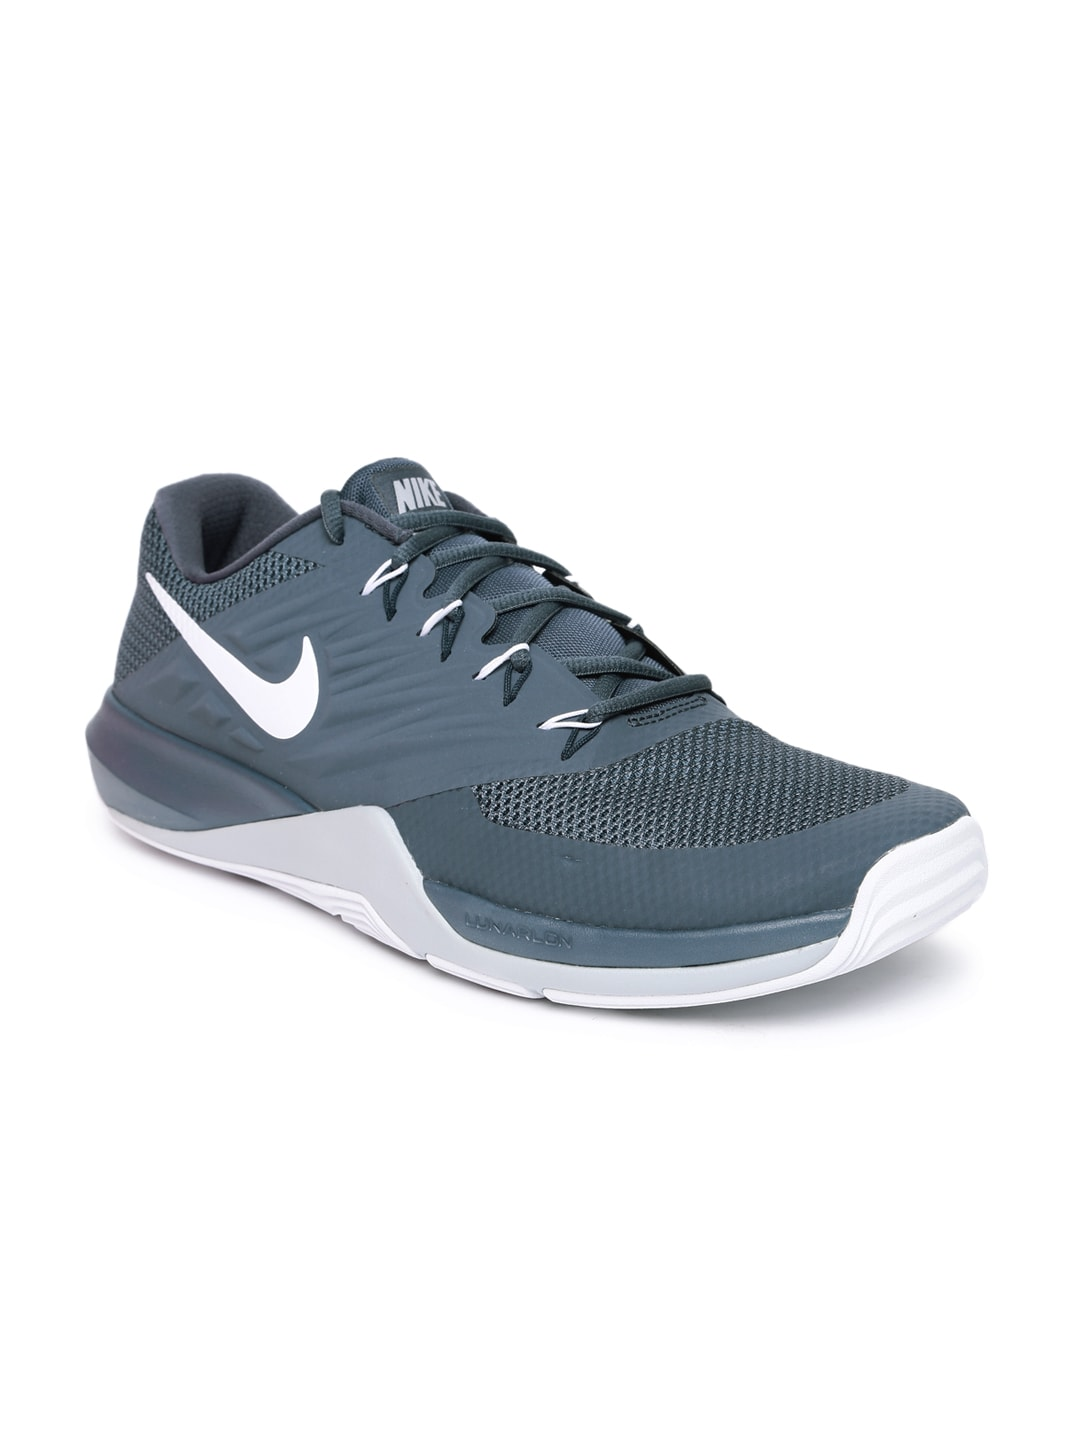 7fc91c3b885a6 Buy Nike Men Navy Blue FLEX CONTROL II Training Shoes - Sports Shoes ...